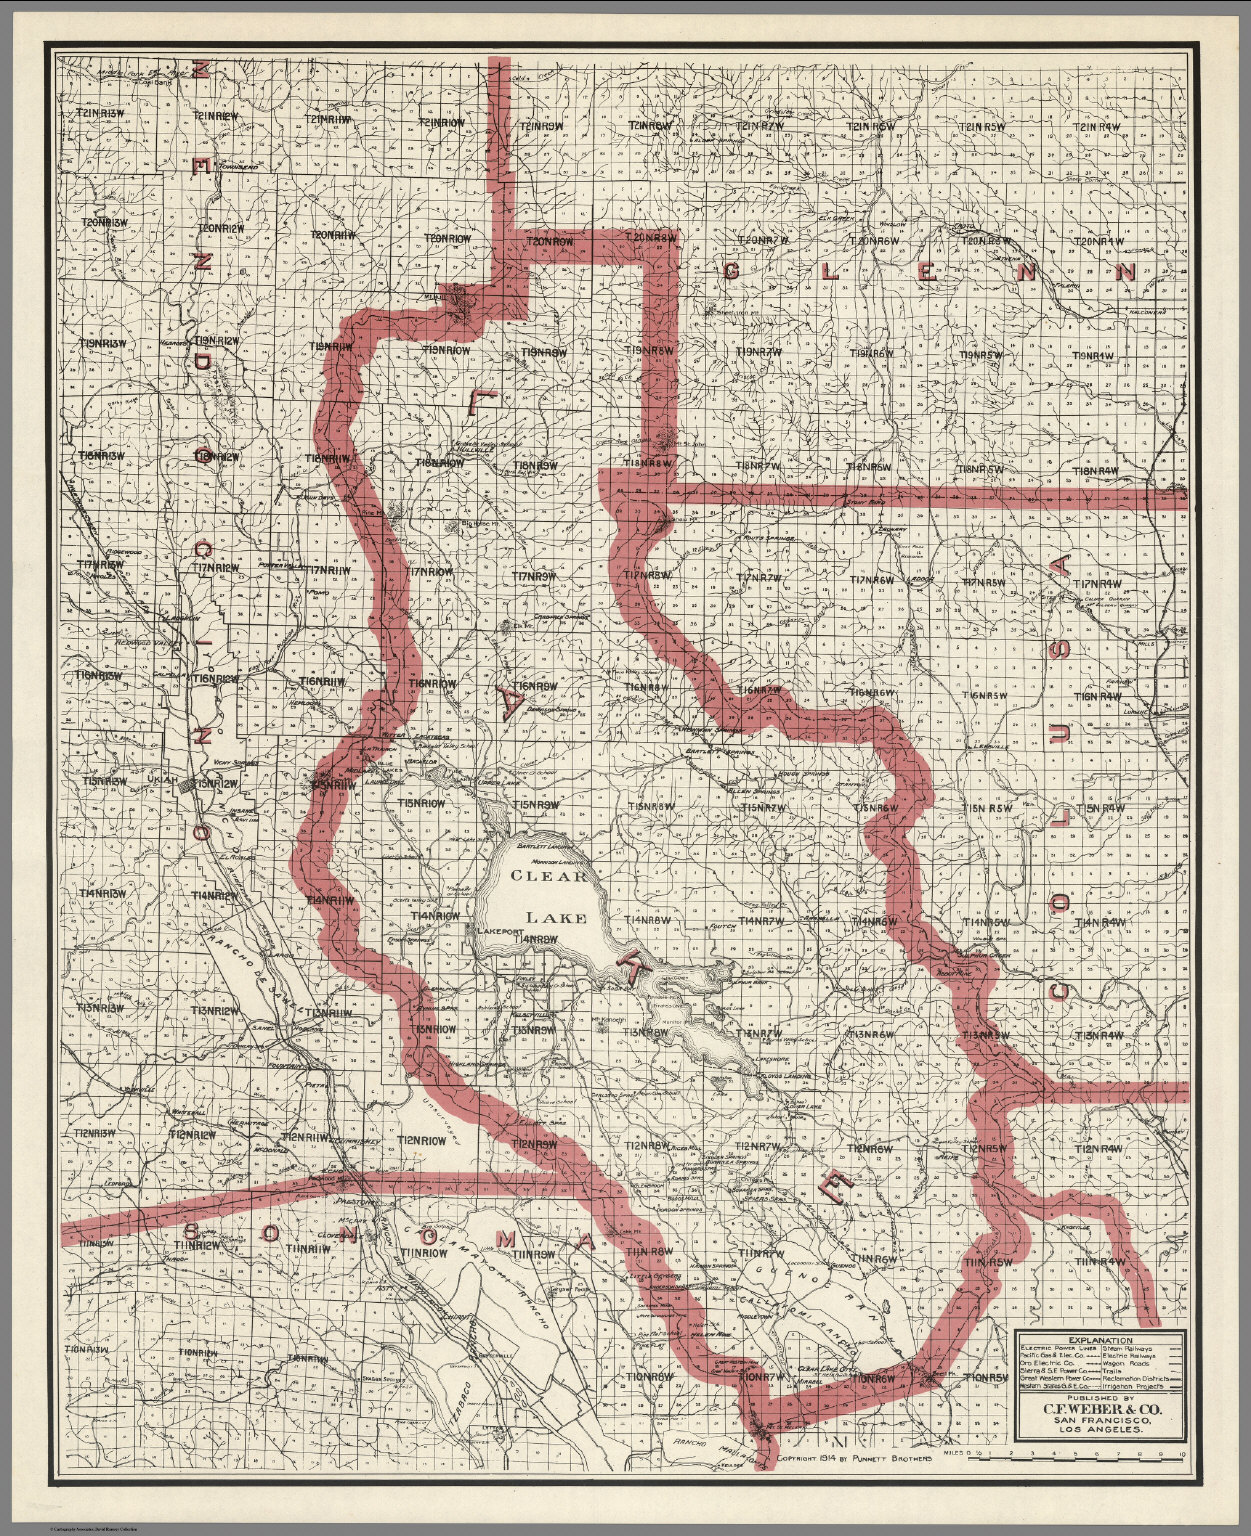 Popular 163 List Map Of Lake County